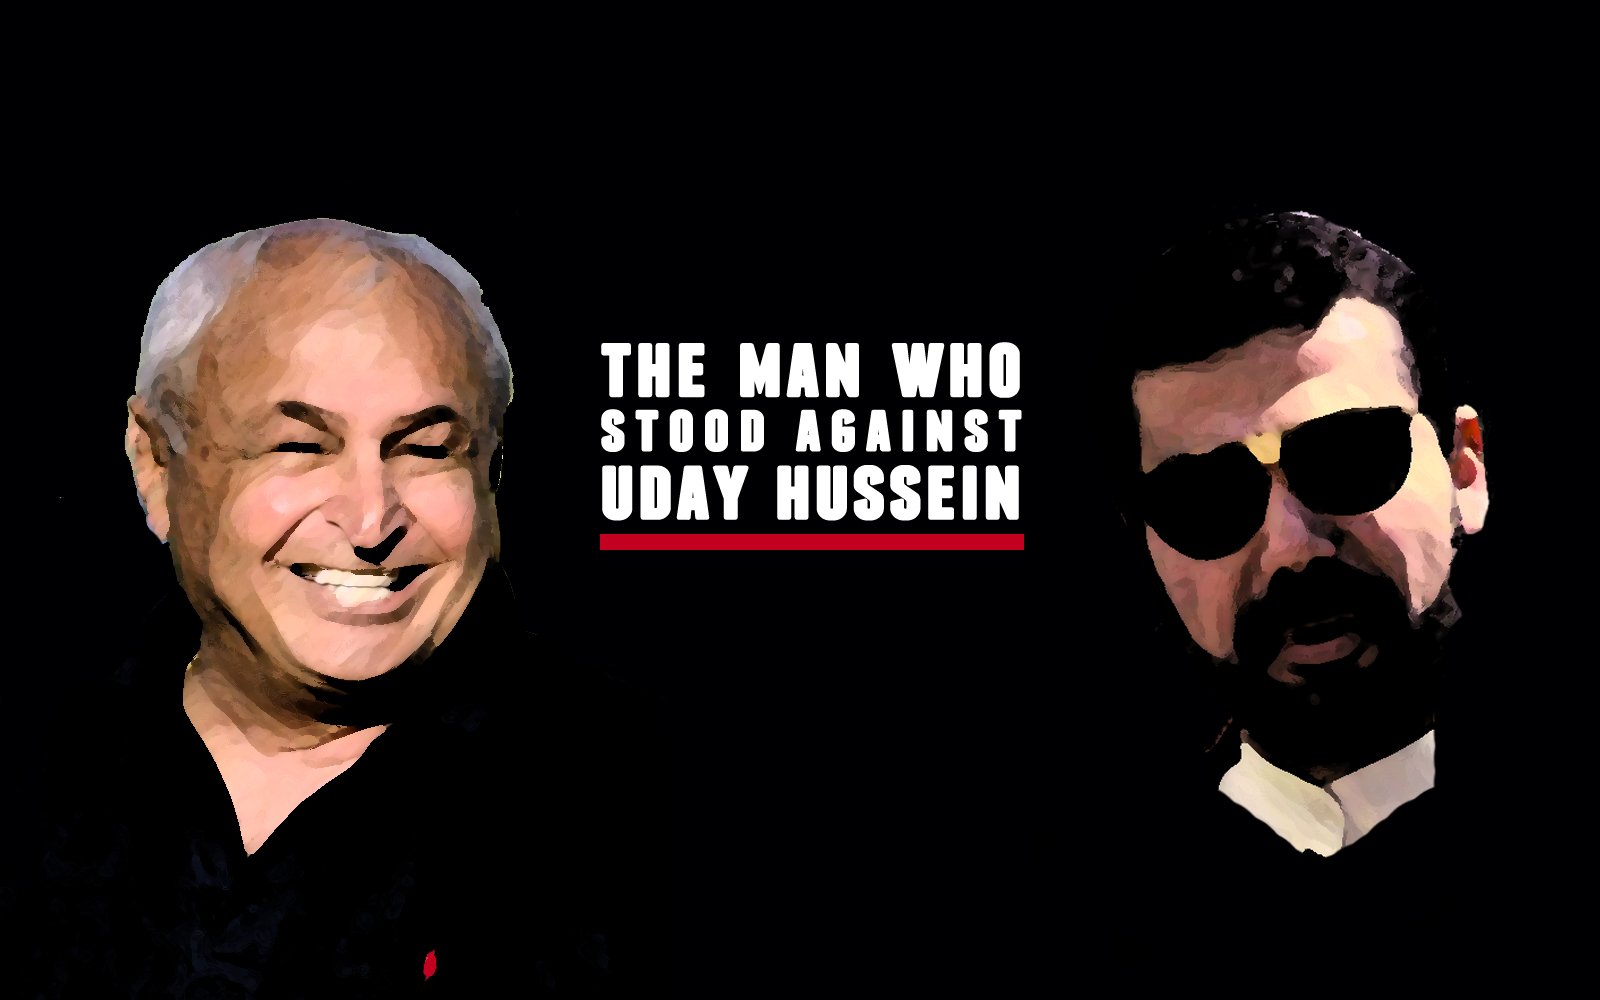 Ammo Baba: The Man Who Stood Against Uday Hussein